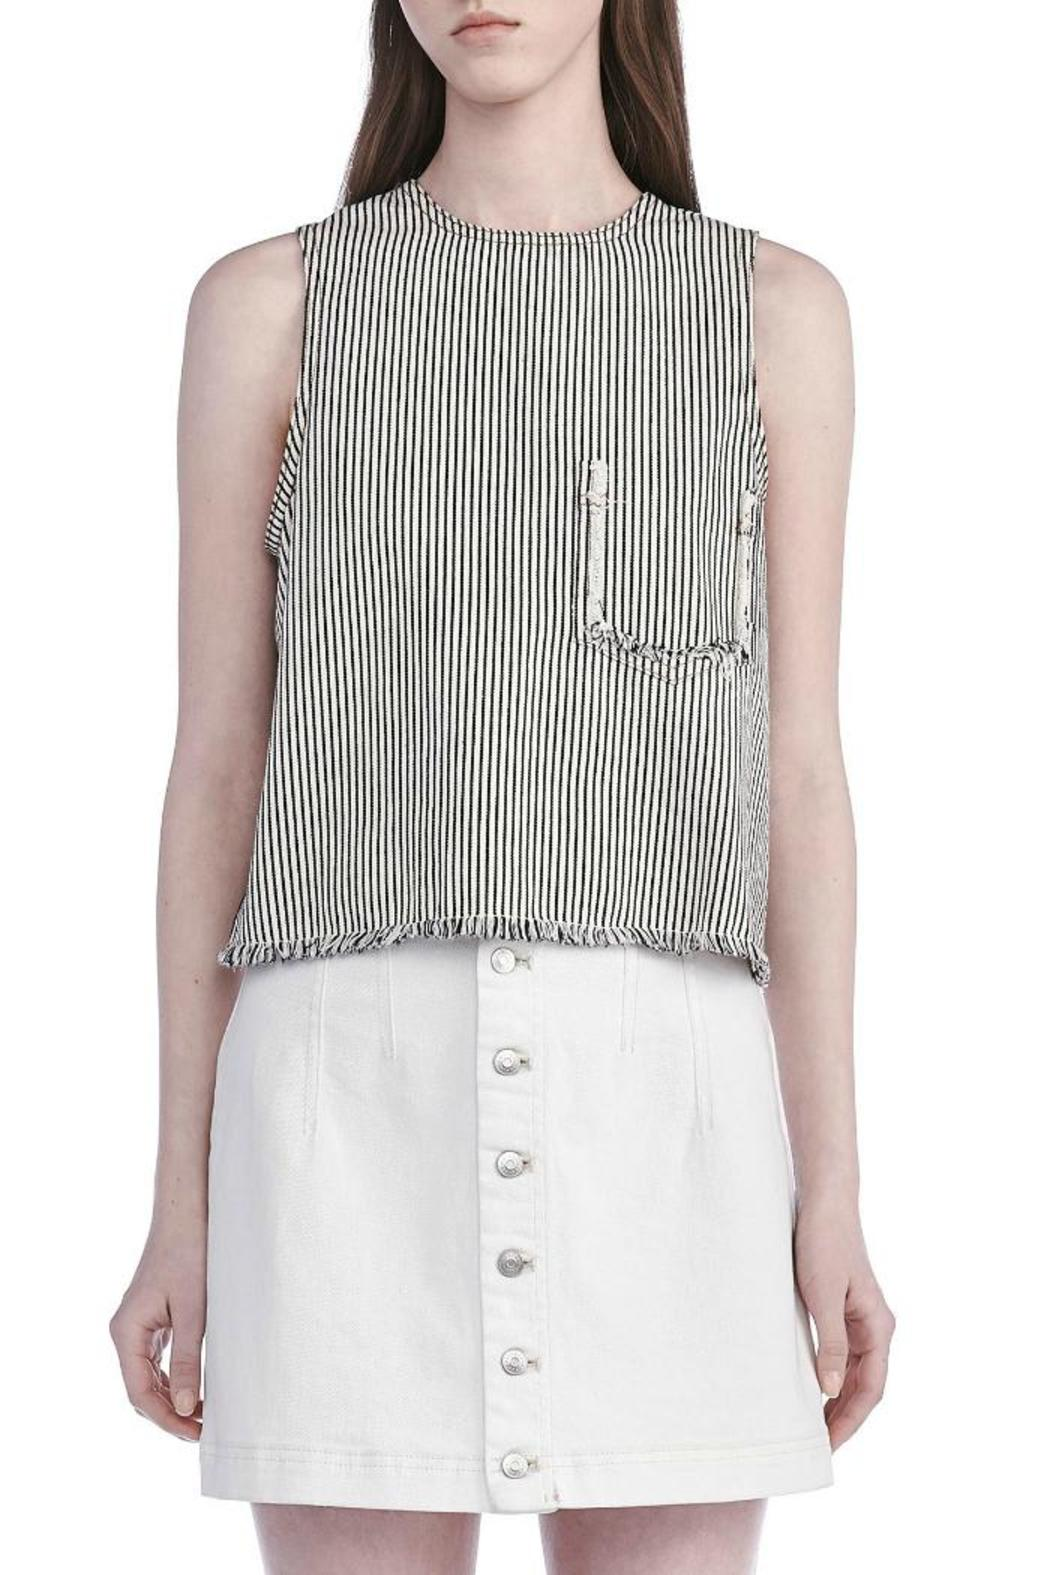 T by Alexander Wang Frayed Crop Top - Main Image